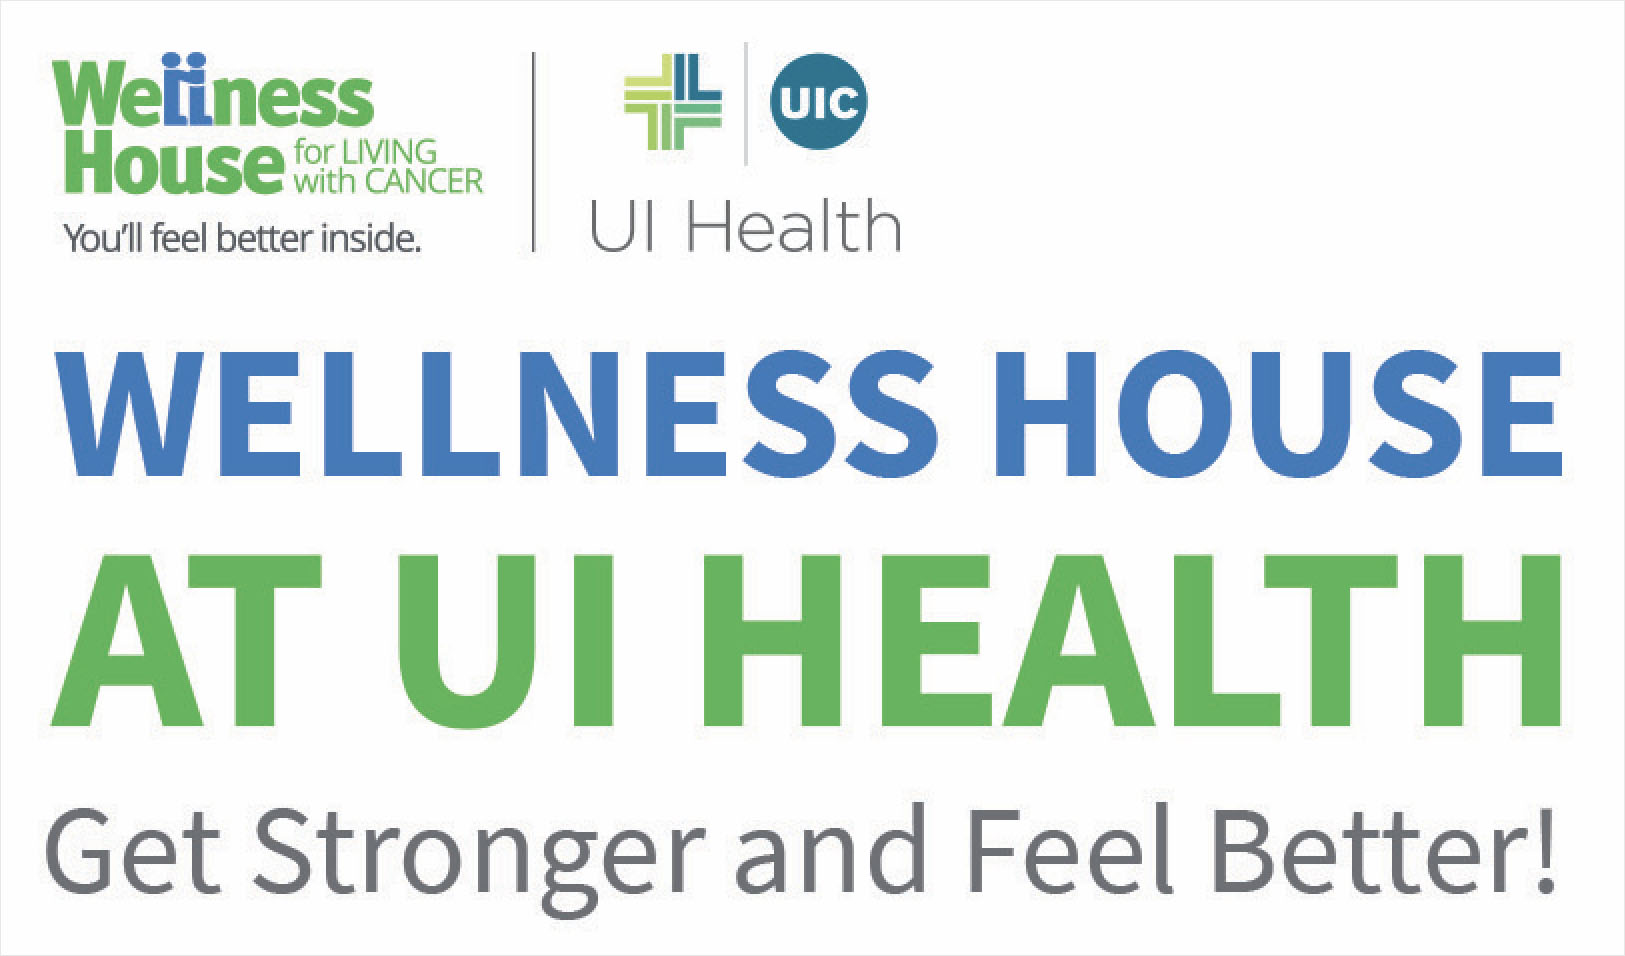 Wellness House at UI Health - Chicago, IL